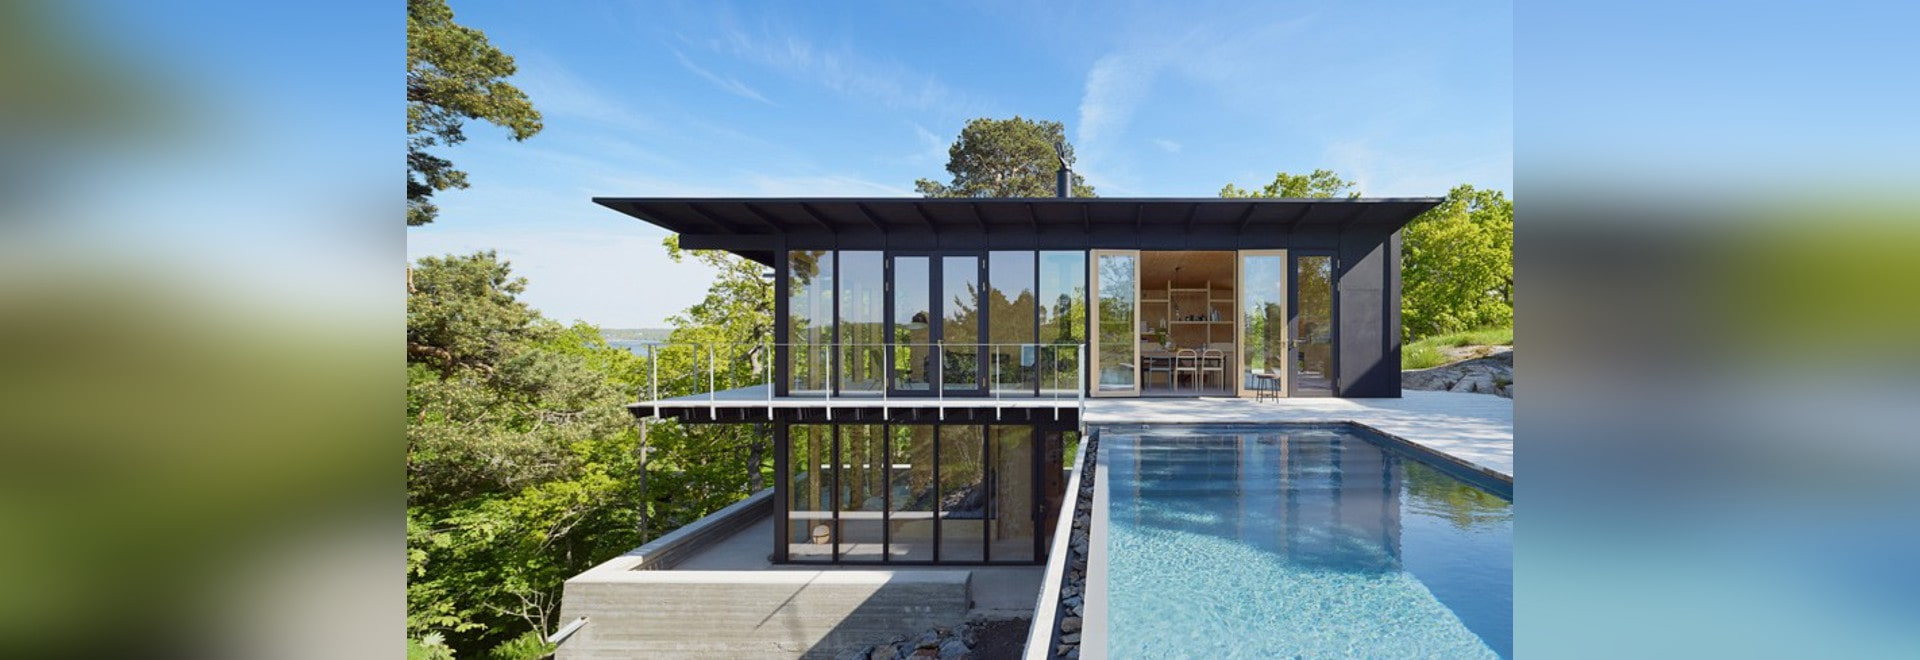 andreas martin-löf's country retreat overlooks stockholm's archipelago